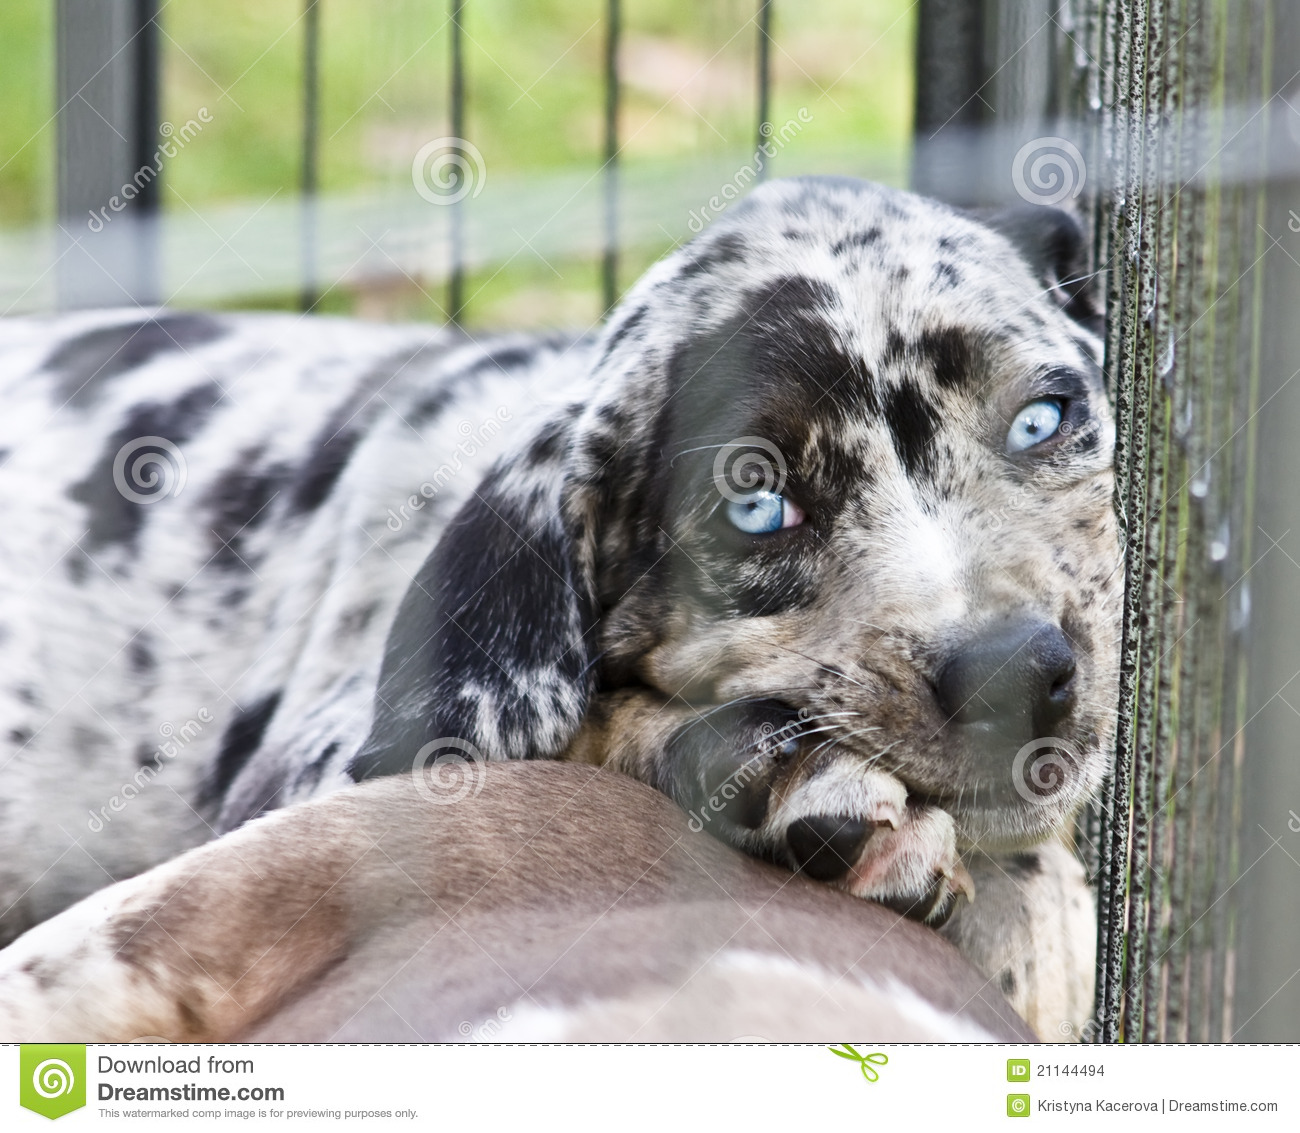 Catahoula Puppy With Blue Eyes Stock Images - Image: 21144494